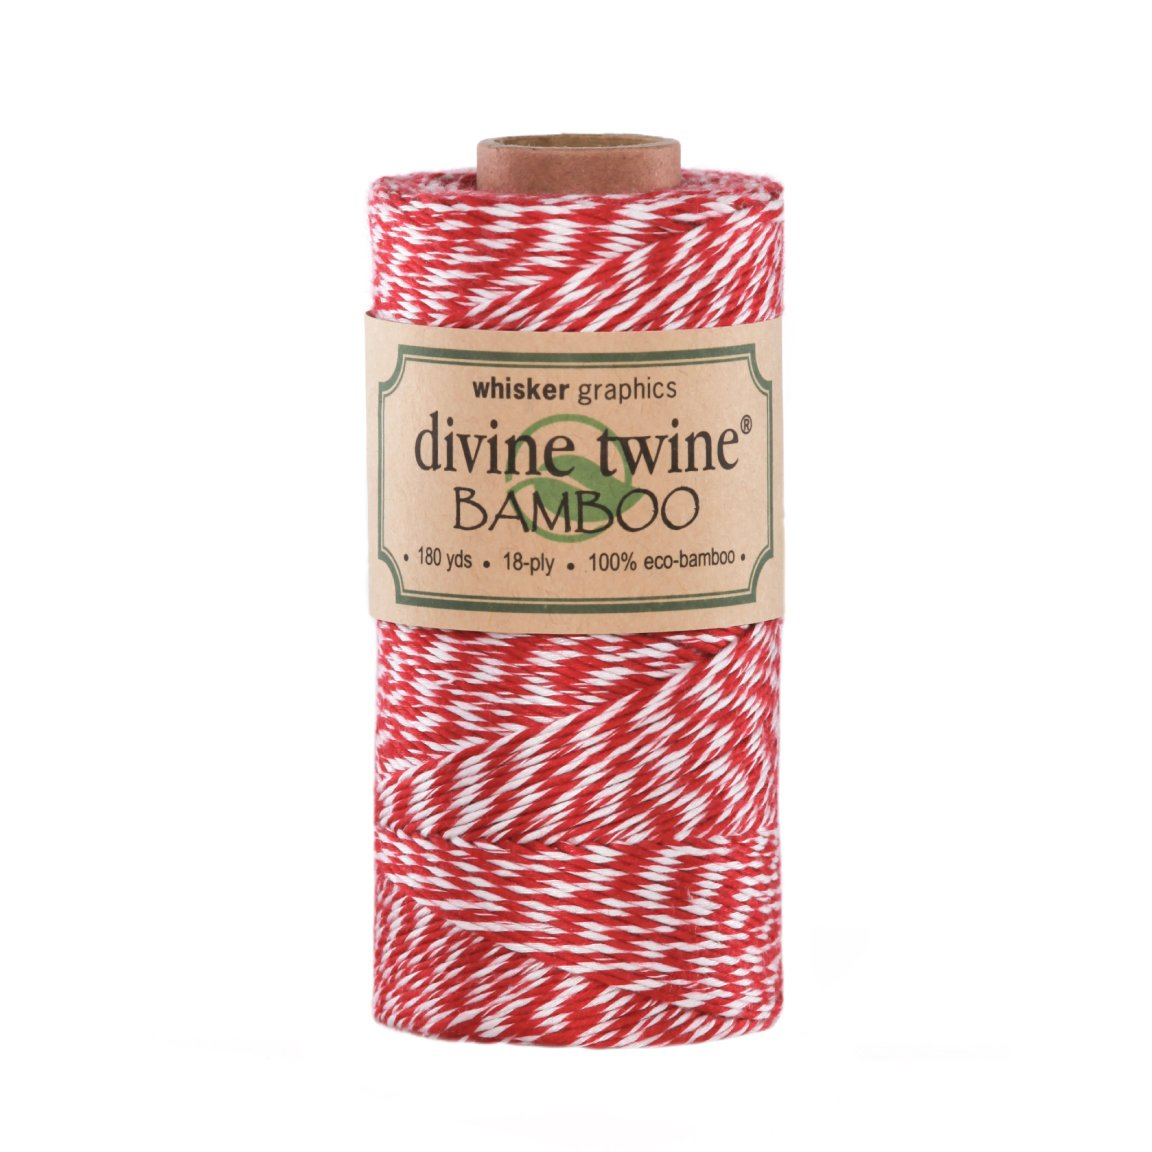 Divine Twine Eco-Bamboo, Red/White Whisker Graphics m20006